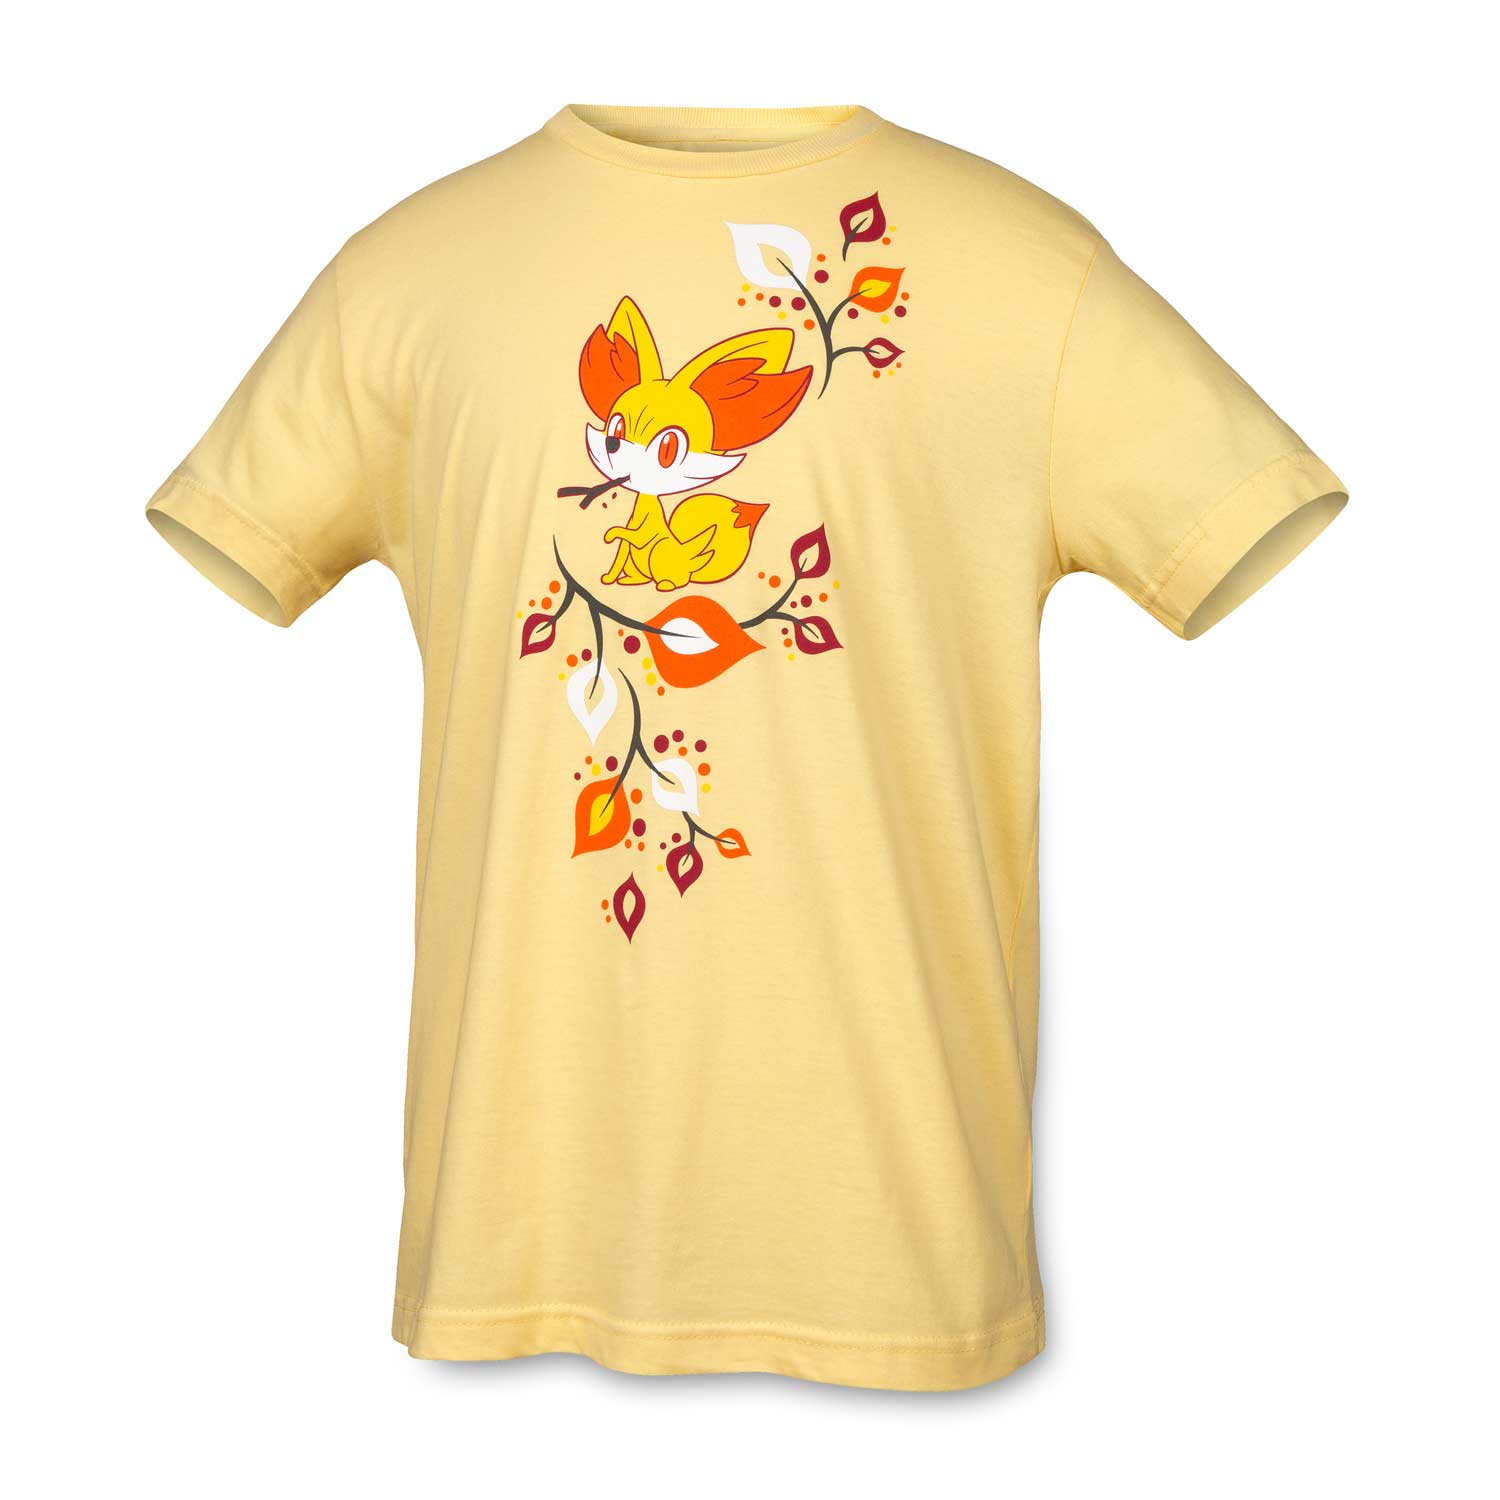 image for fall fennekin youth relaxed fit crewneck t shirt from pokemon center _5_3074457345618259663_3074457345618262057_3074457345618268656